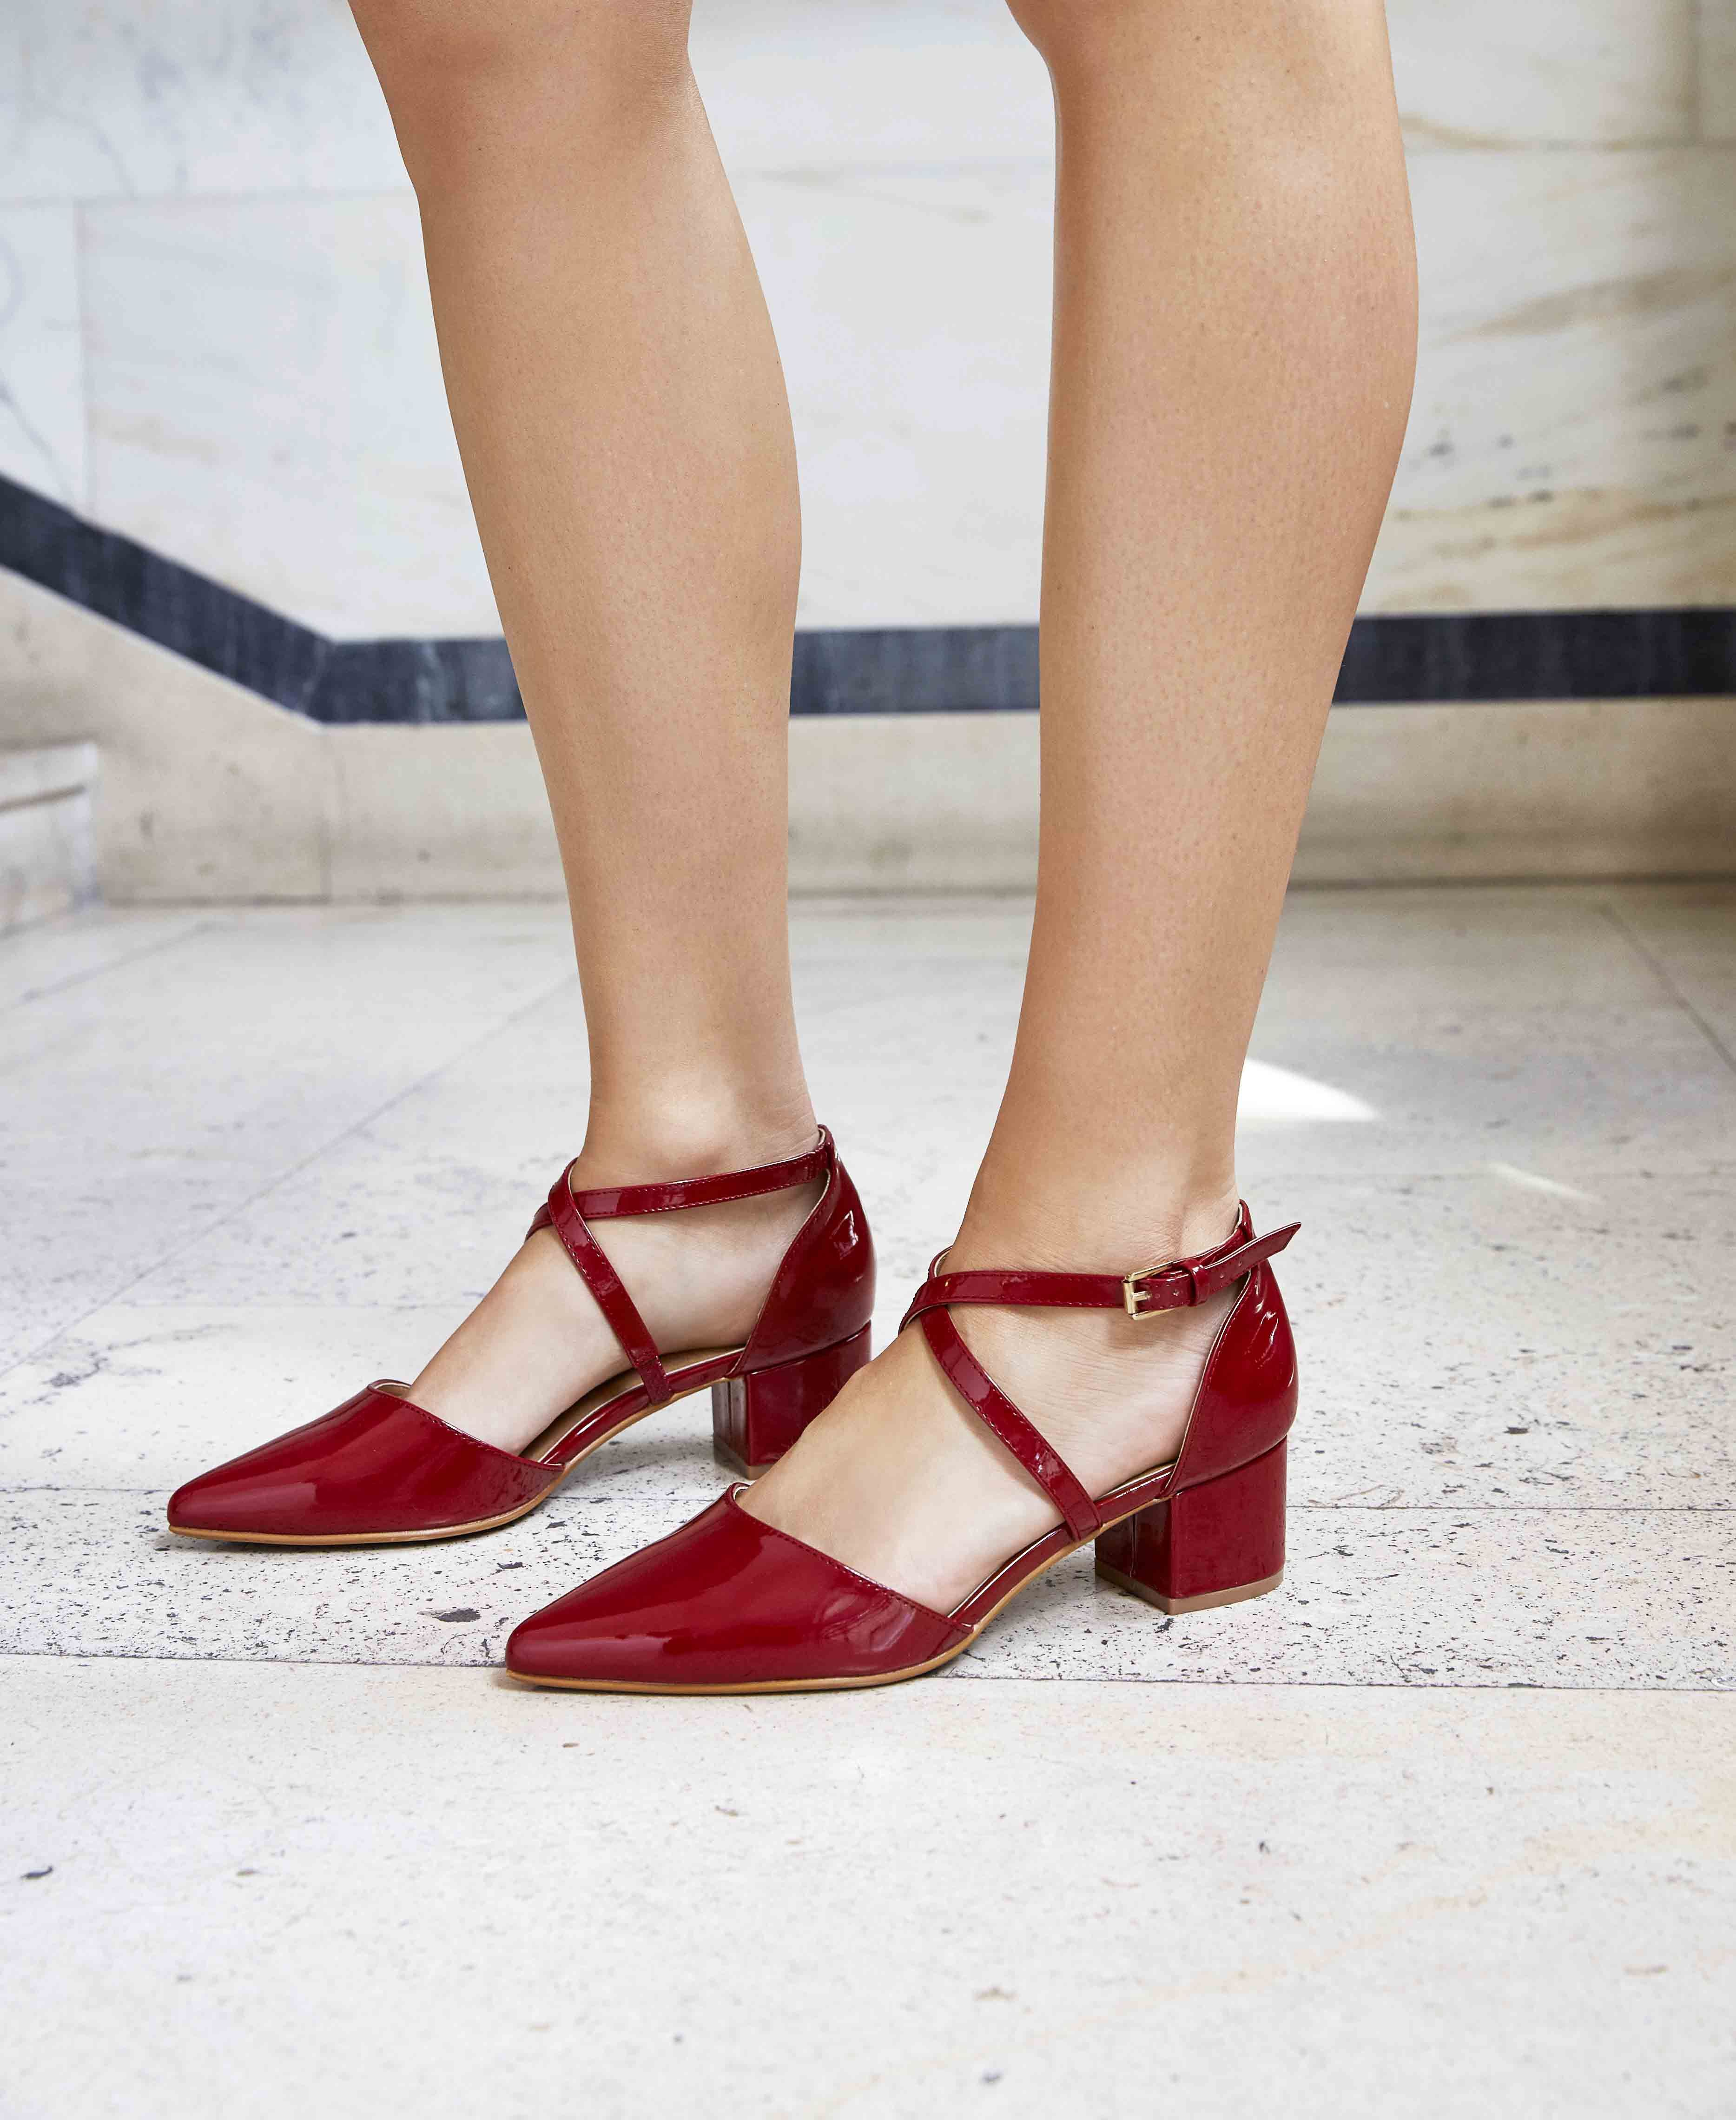 Red Patent Block Heel Sandals #ShoeLounge